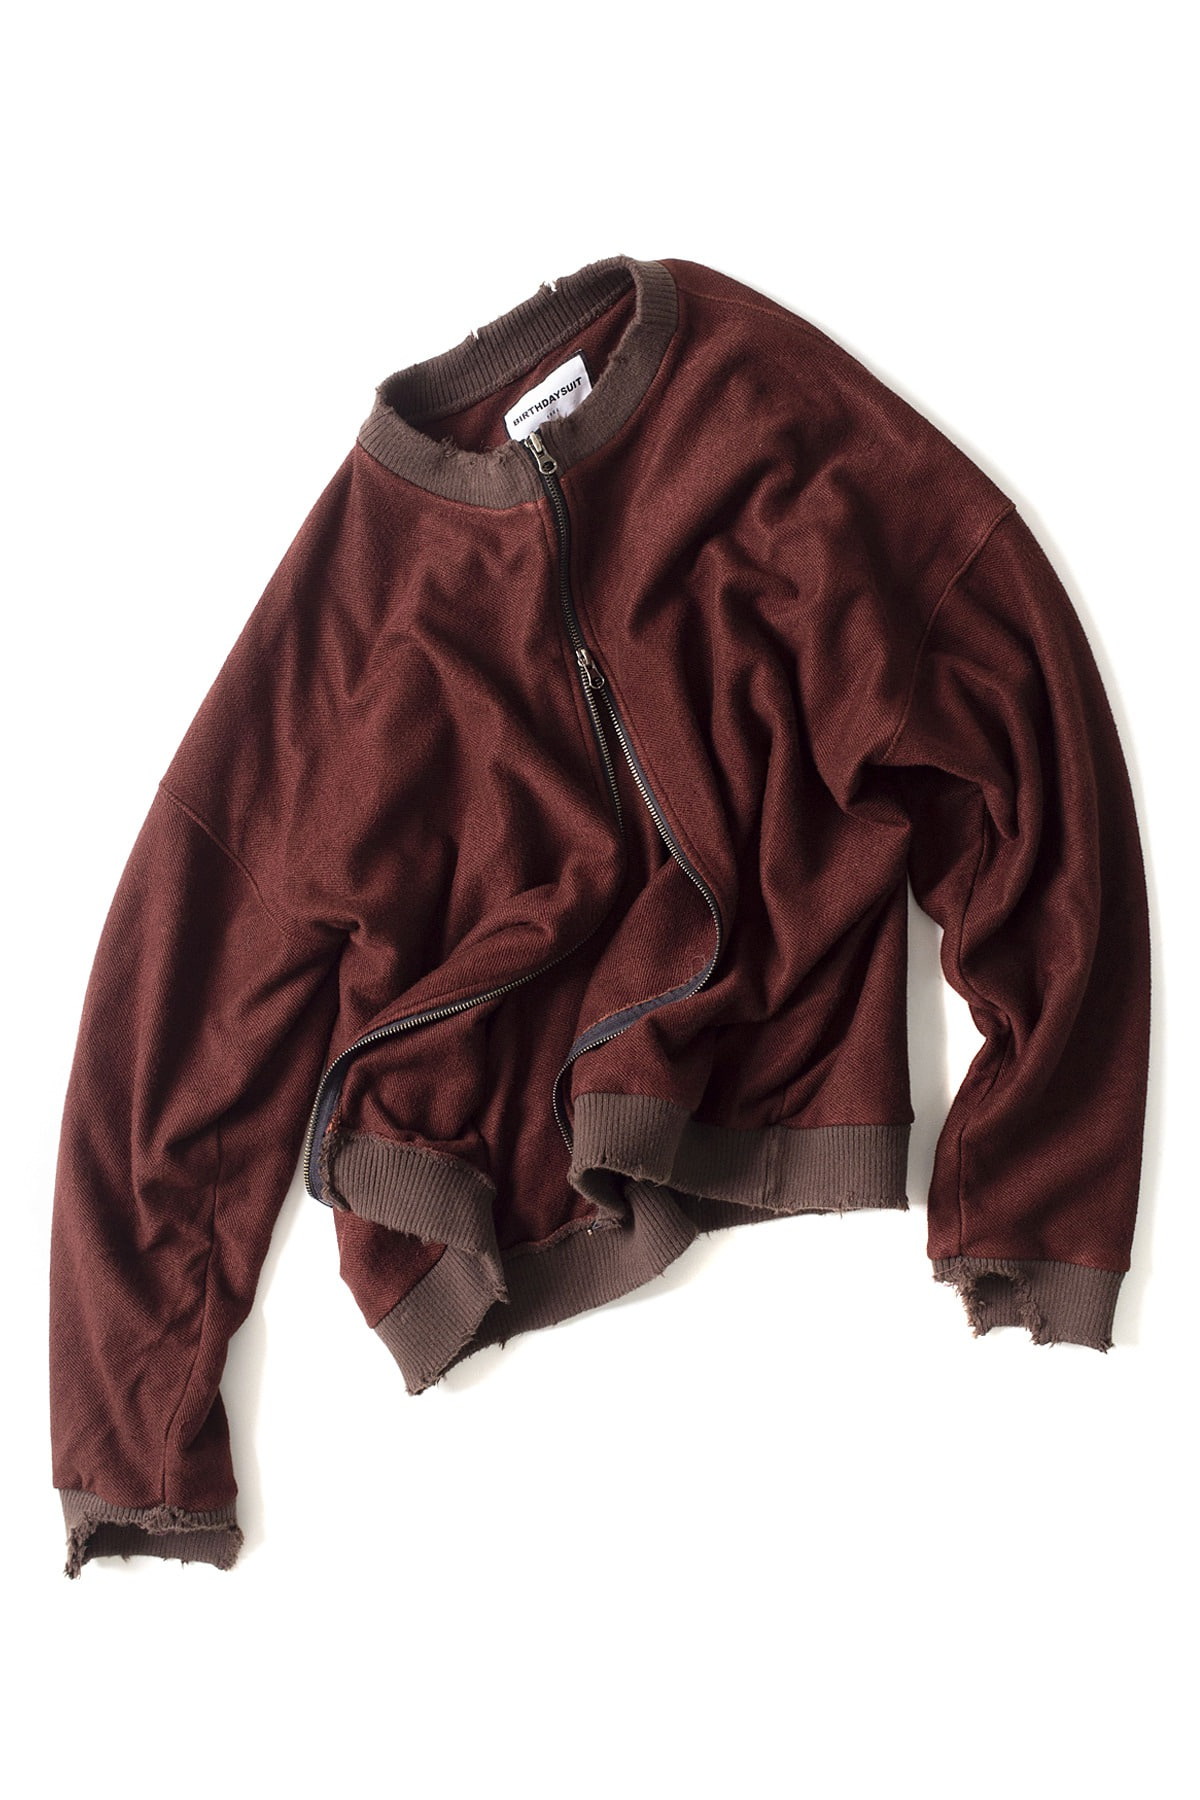 BIRTHDAYSUIT : Super Soft Sweat Zip up (Brown)